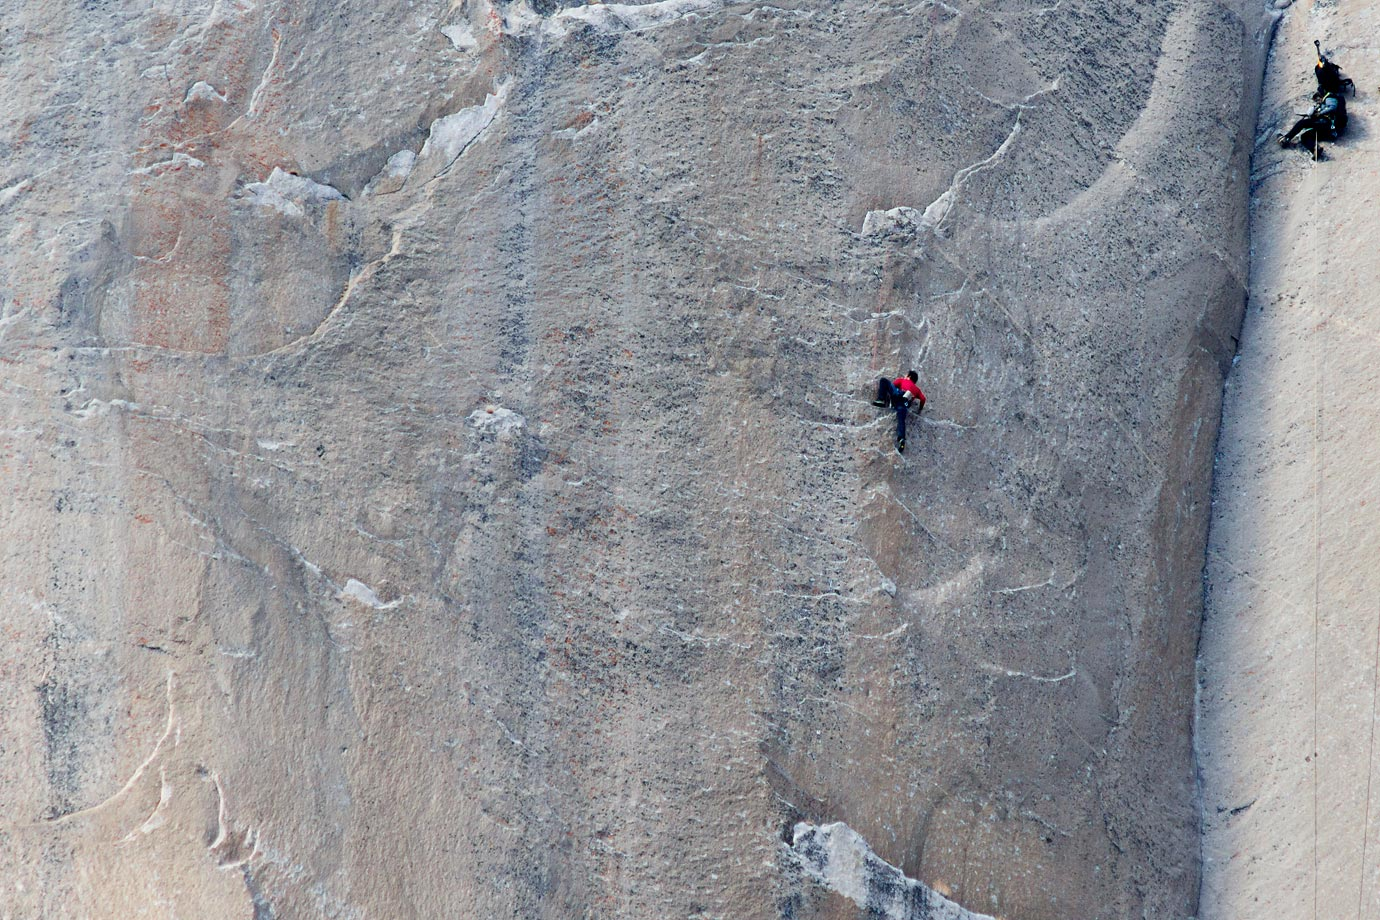 Kevin Jorgeson (in red) climbing on Pitch 18 while a cameraman (in blue, top right) shoots the action.